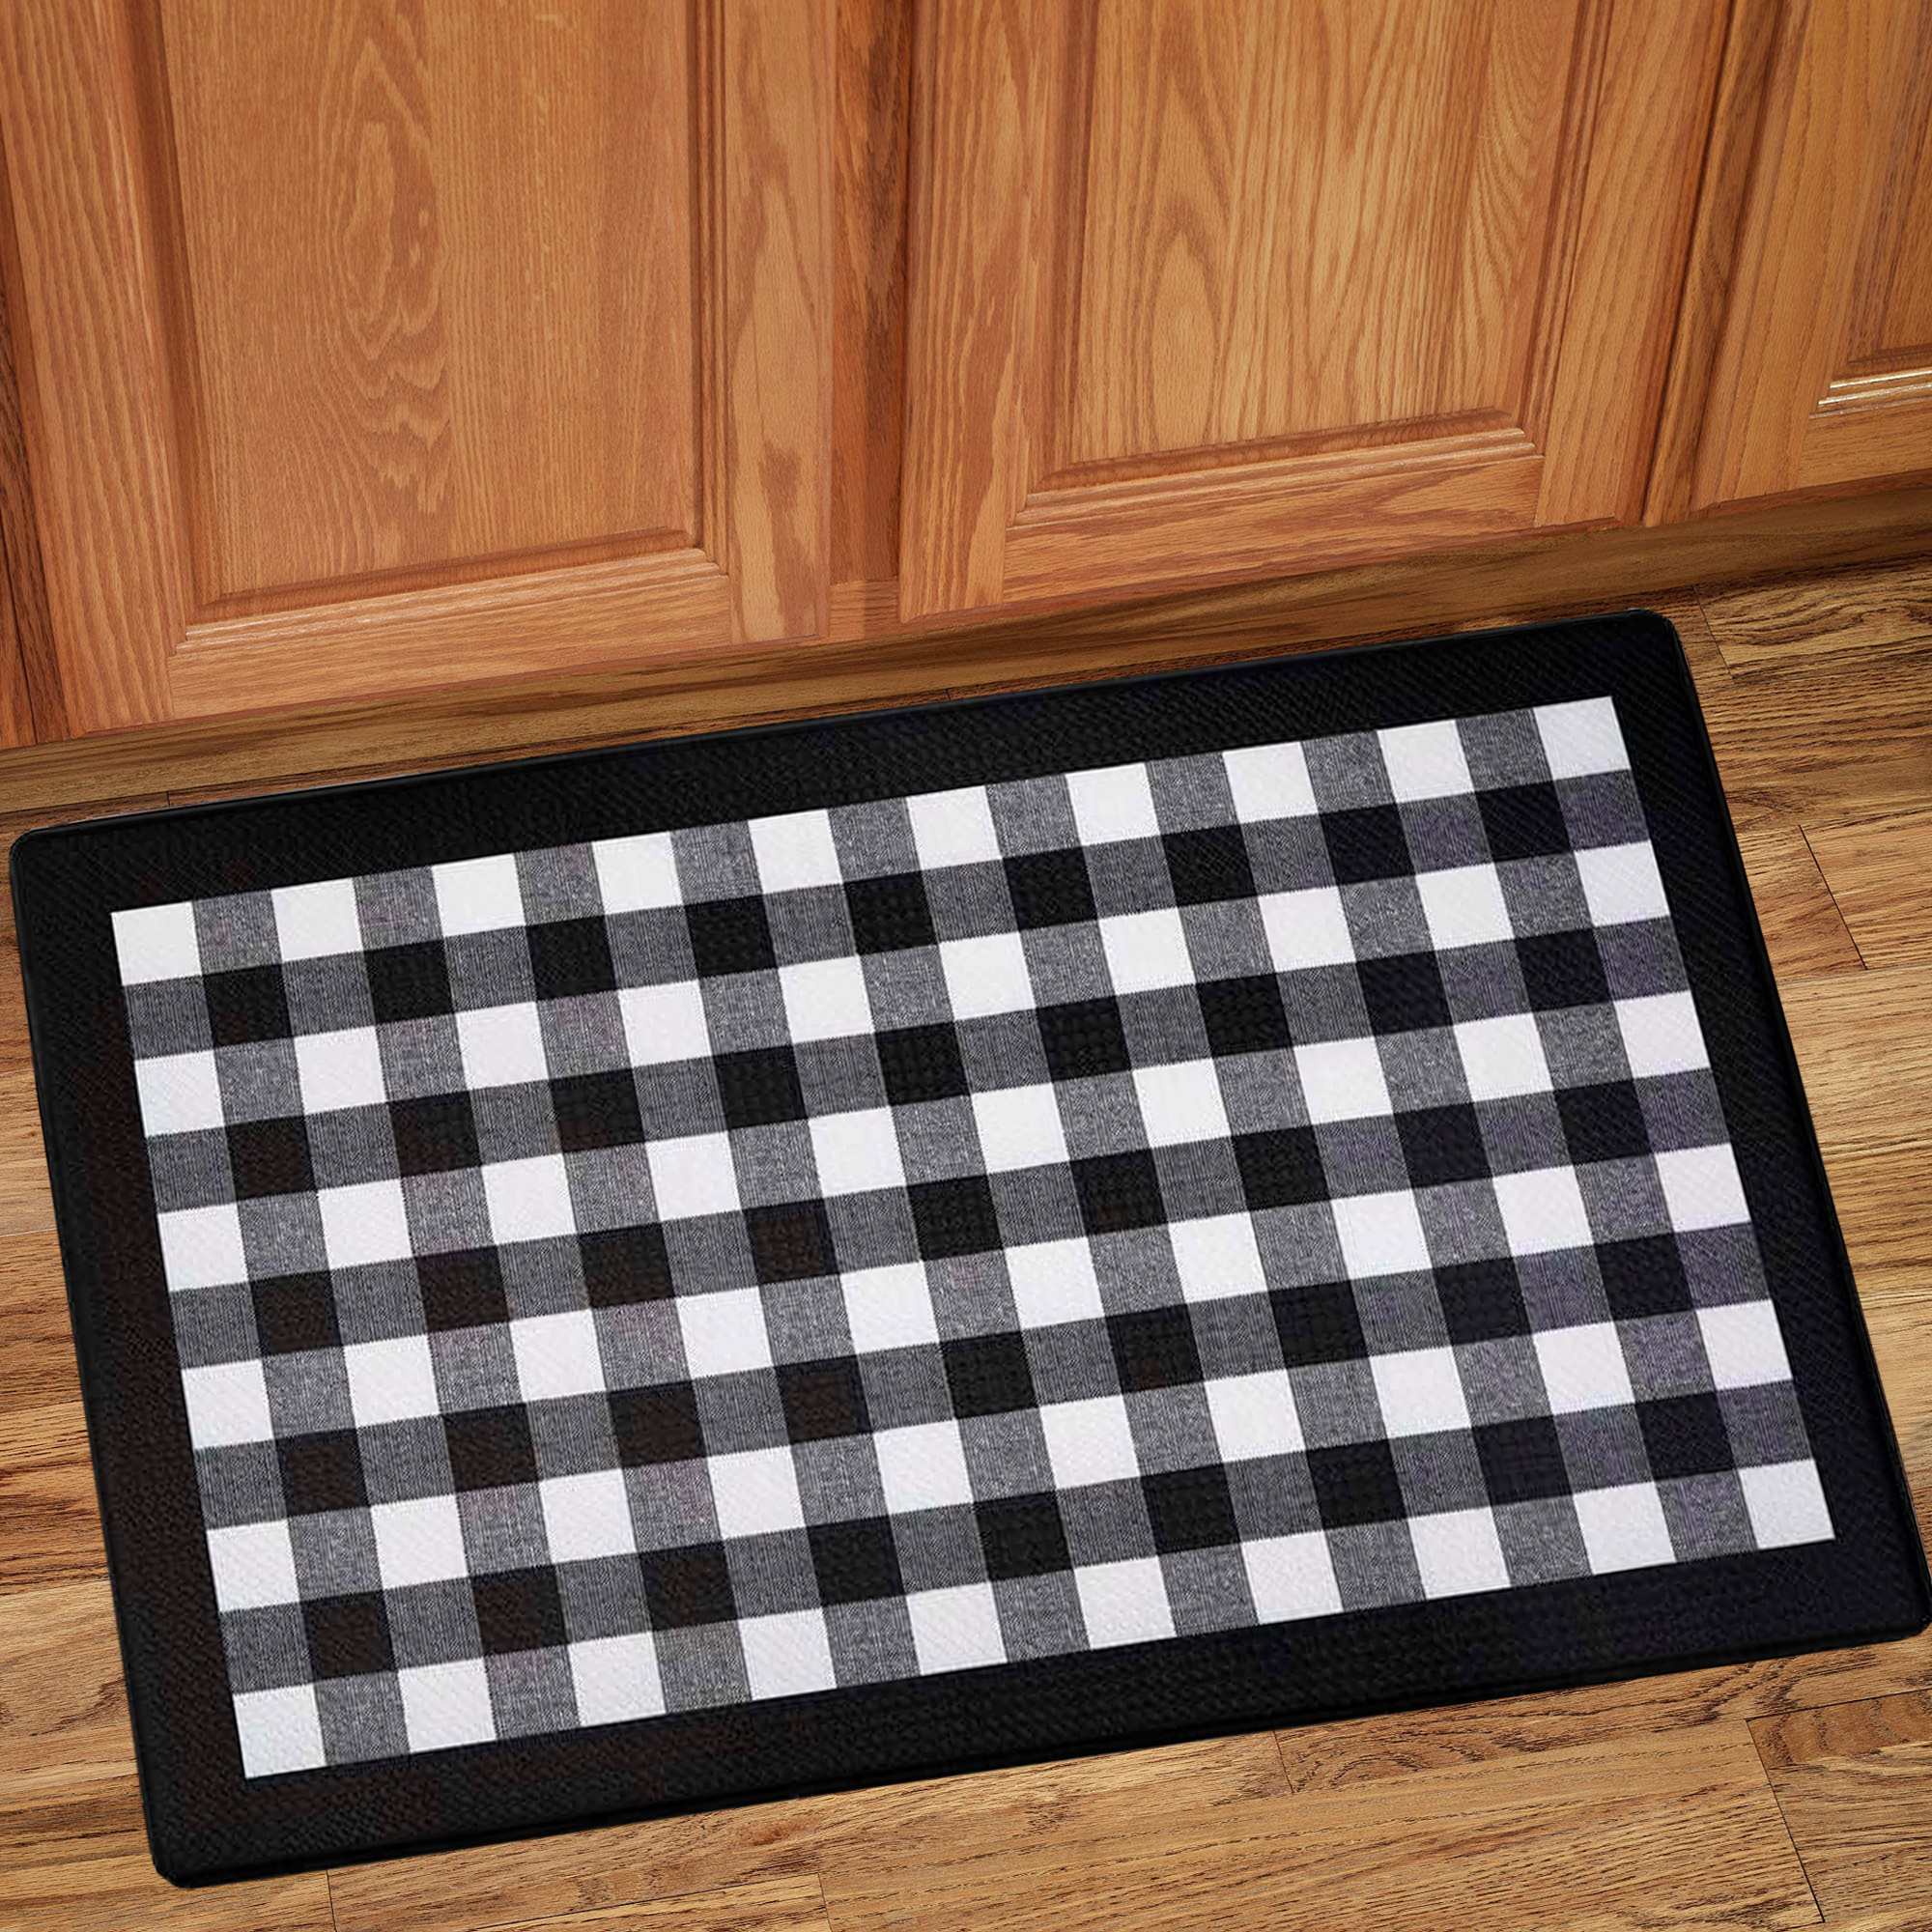 black and white checkered kitchen rug buffalo check printed anti fatigue kitchen floor rug mat 333